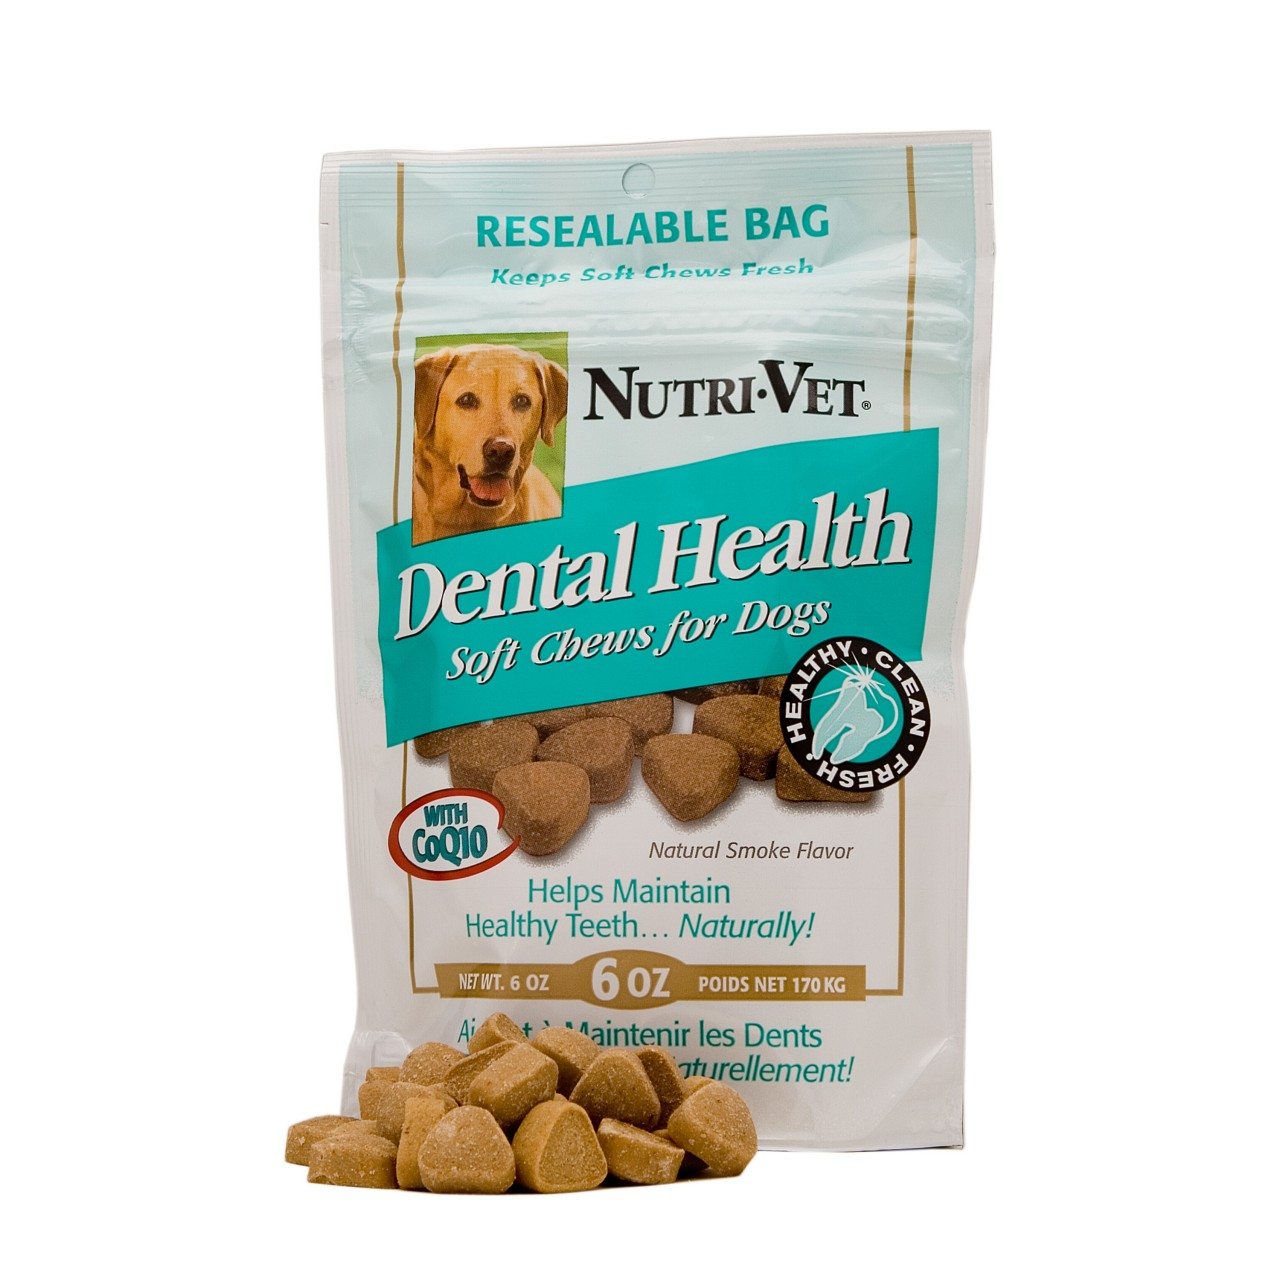 Nutri-Vet Dental Health Soft Chews